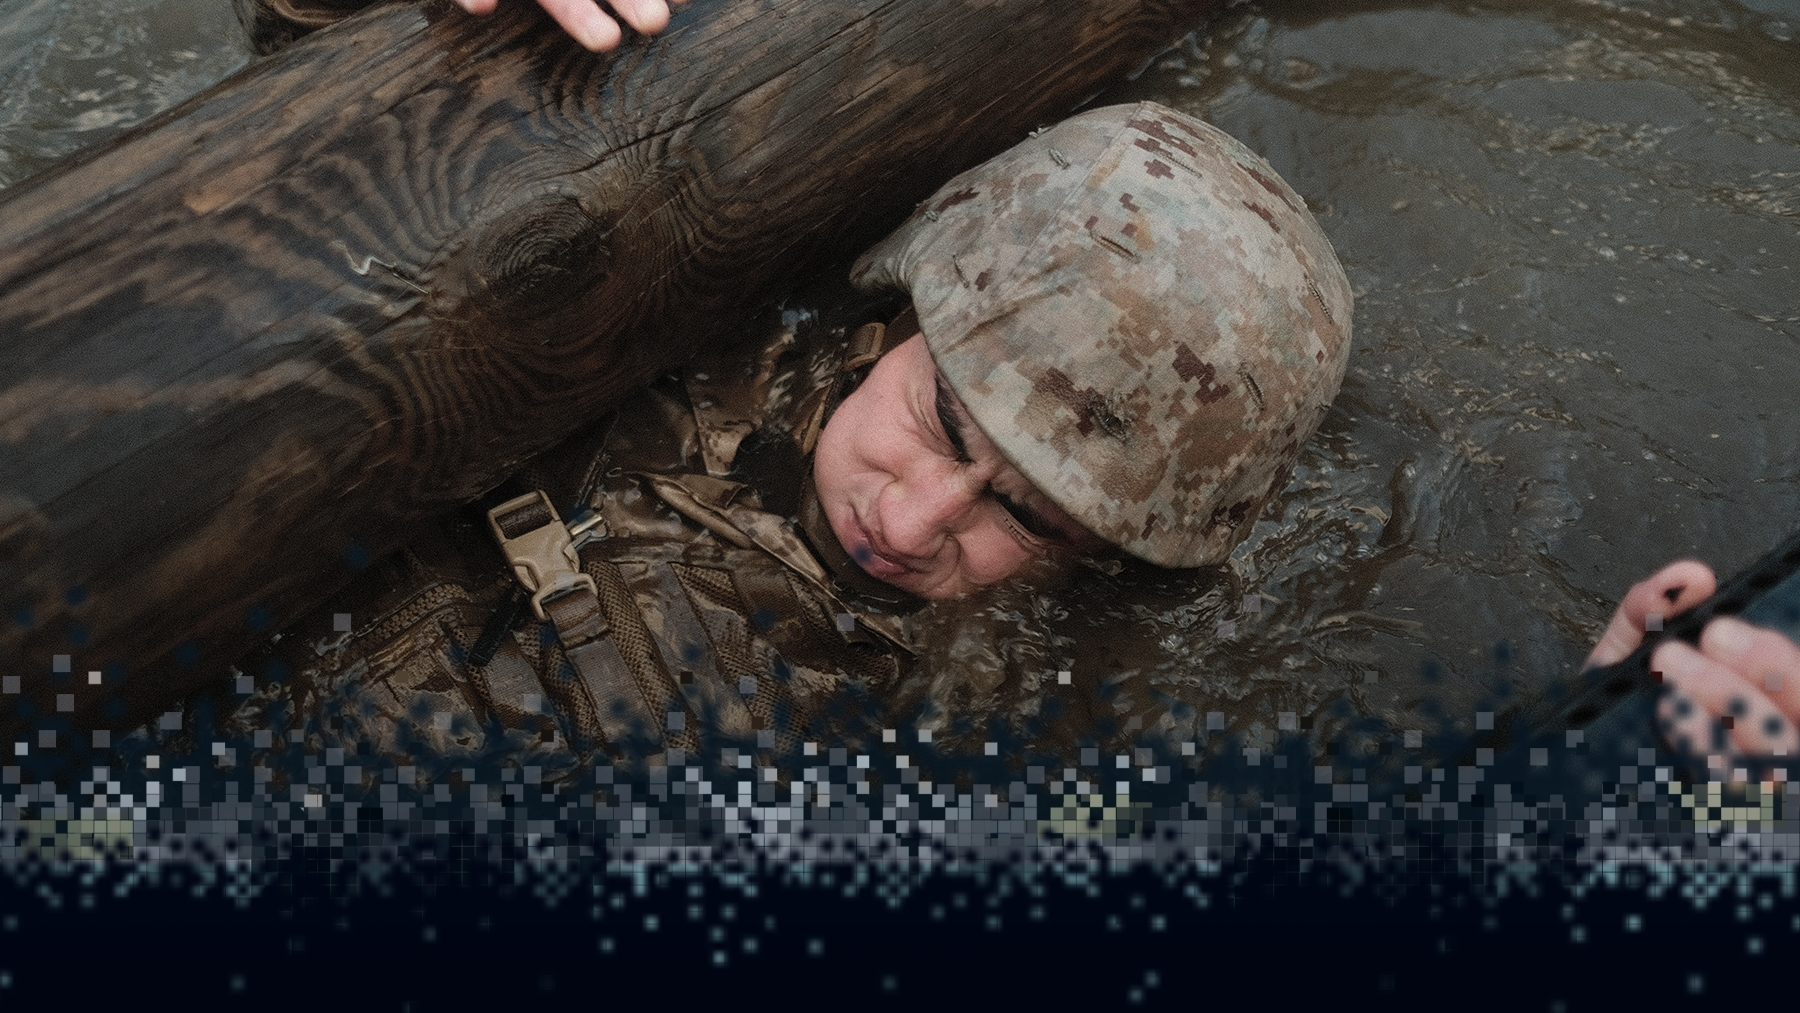 An officer candidate holds his breath before completing an underwater training obstacle.